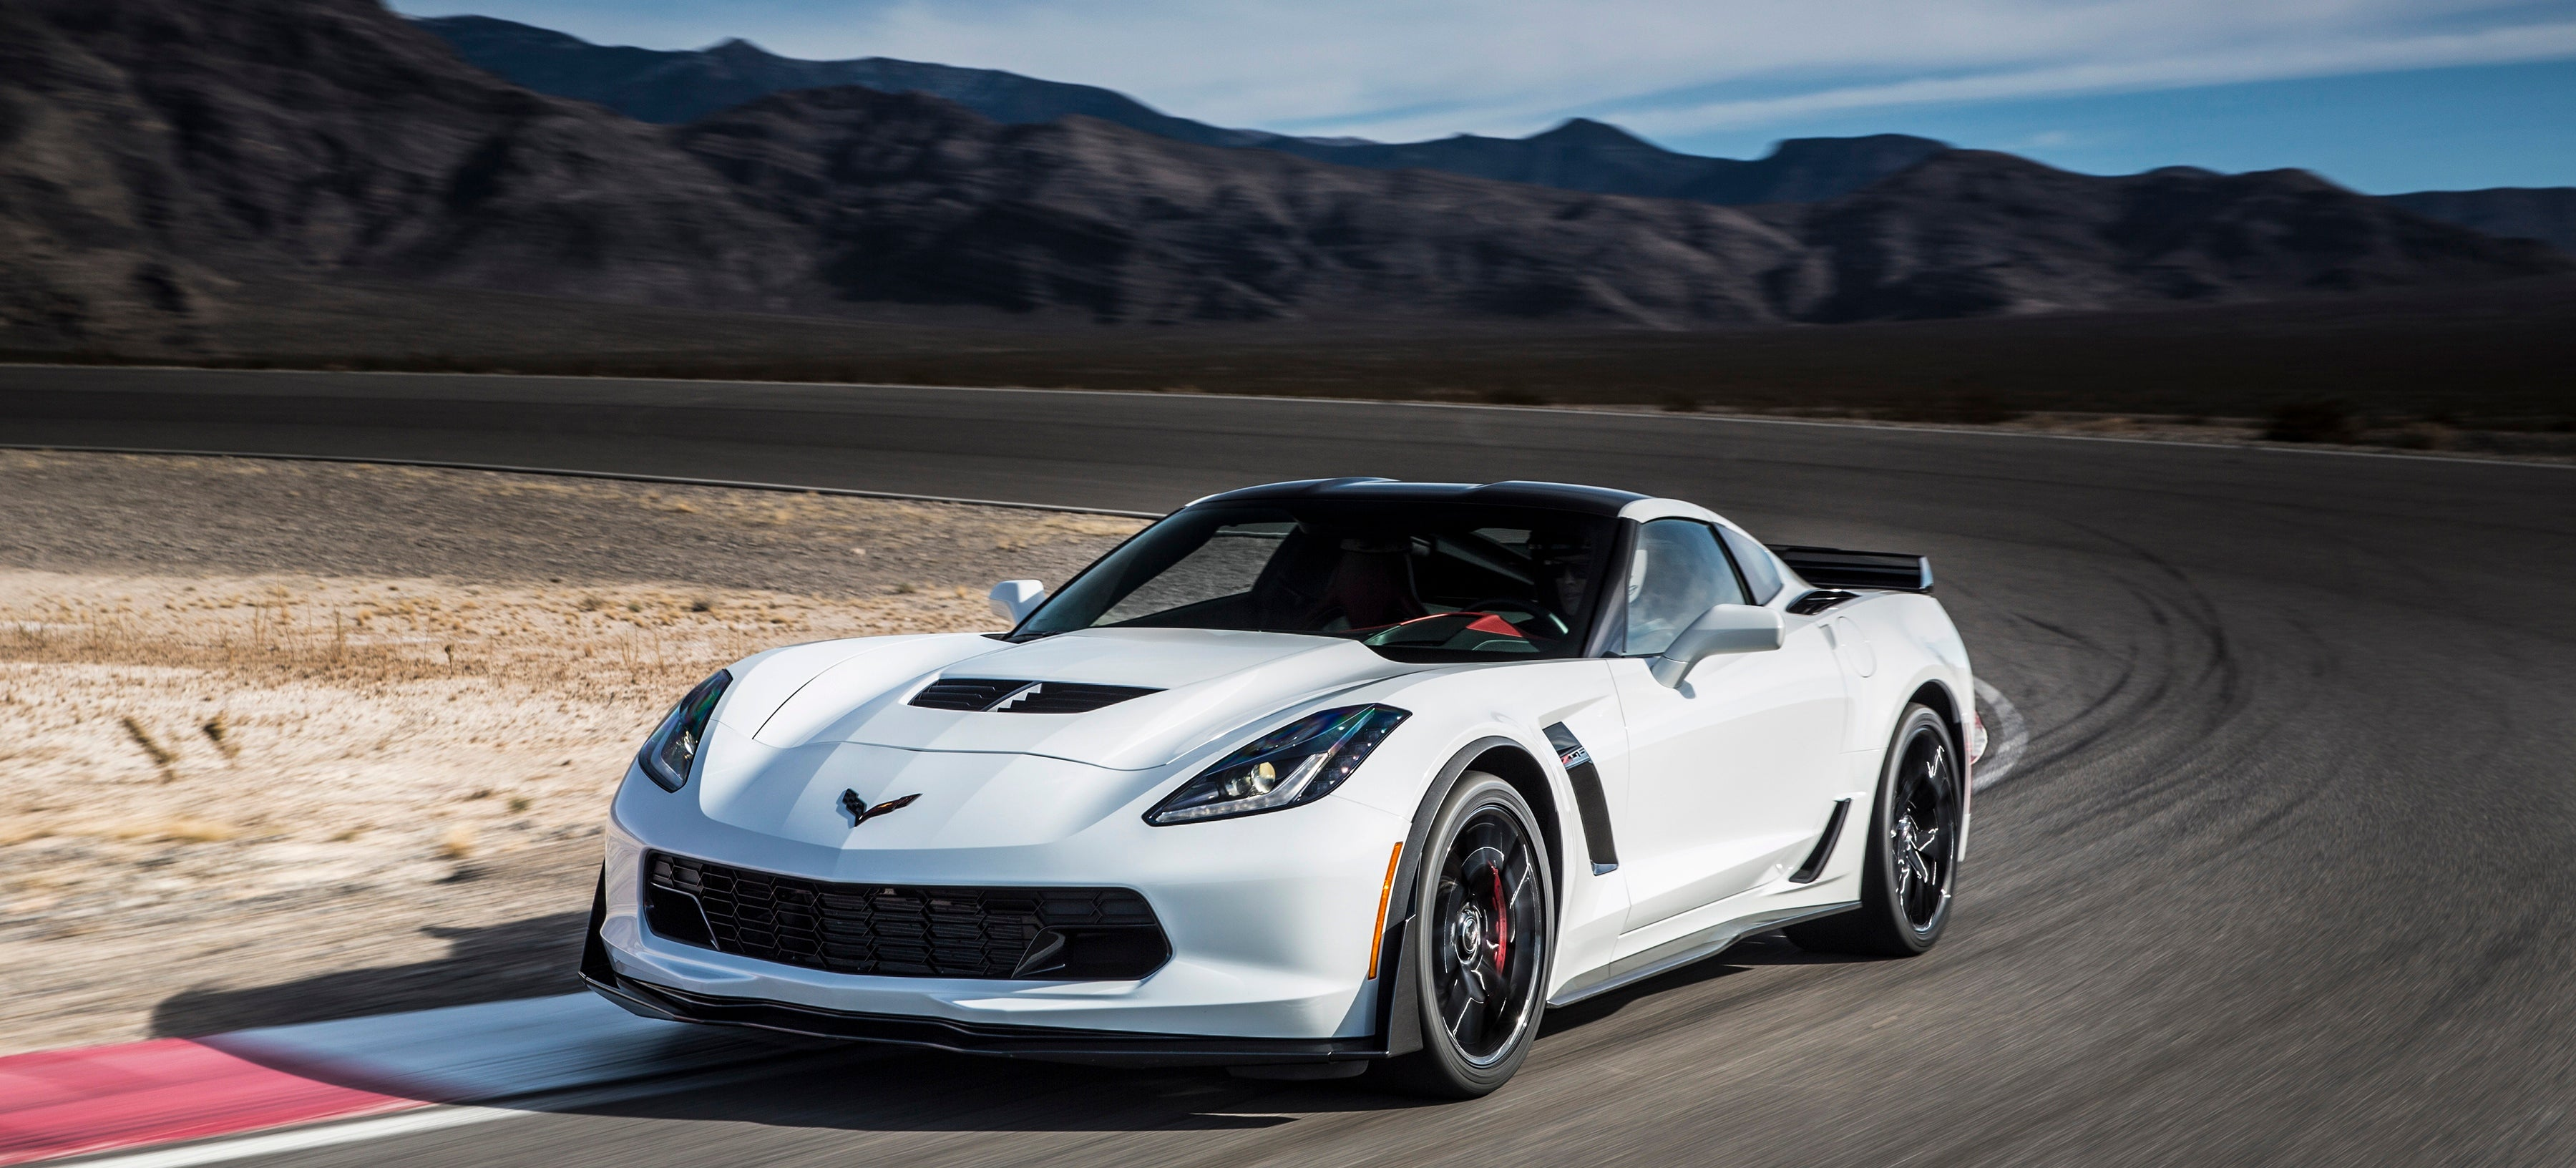 2016 Corvette Z07 >> 2015 Corvette Z06: A 650 HP All-American Middle Finger To ...